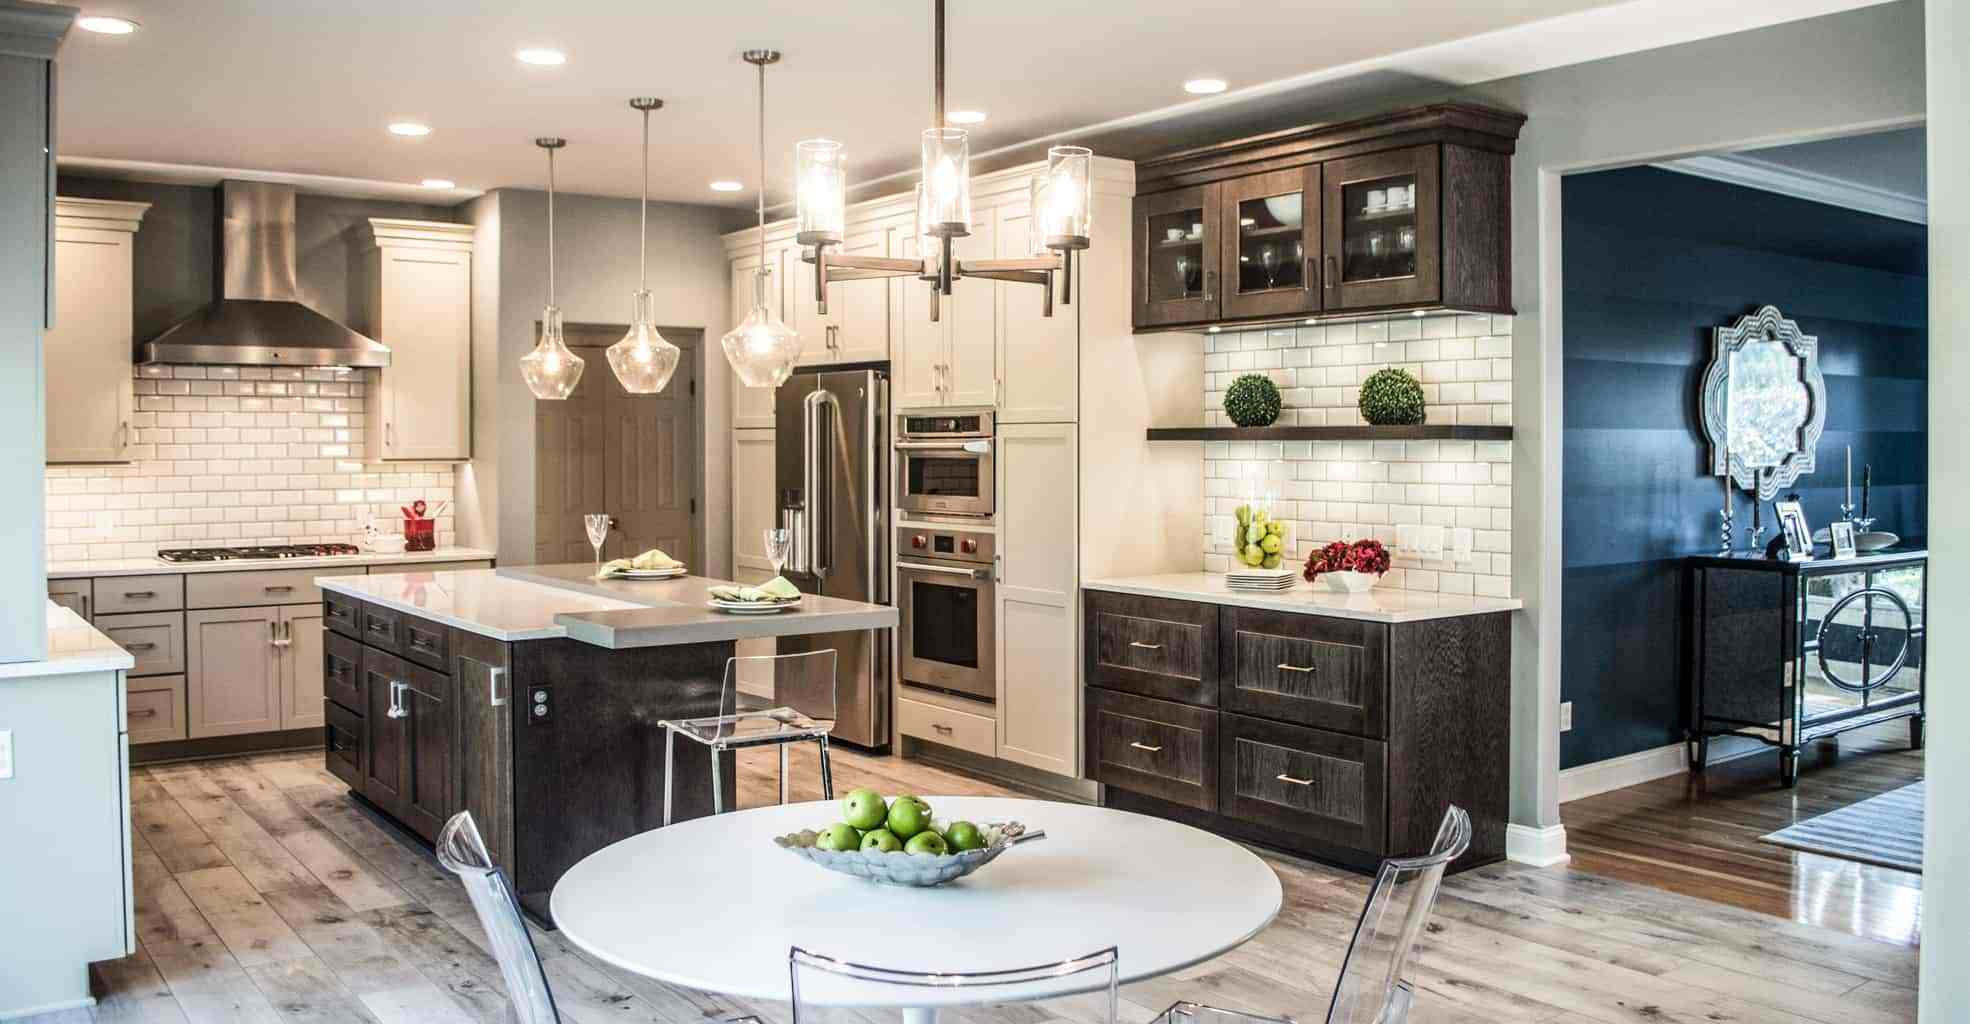 Why Your Kitchen Is The Heart of Your Home